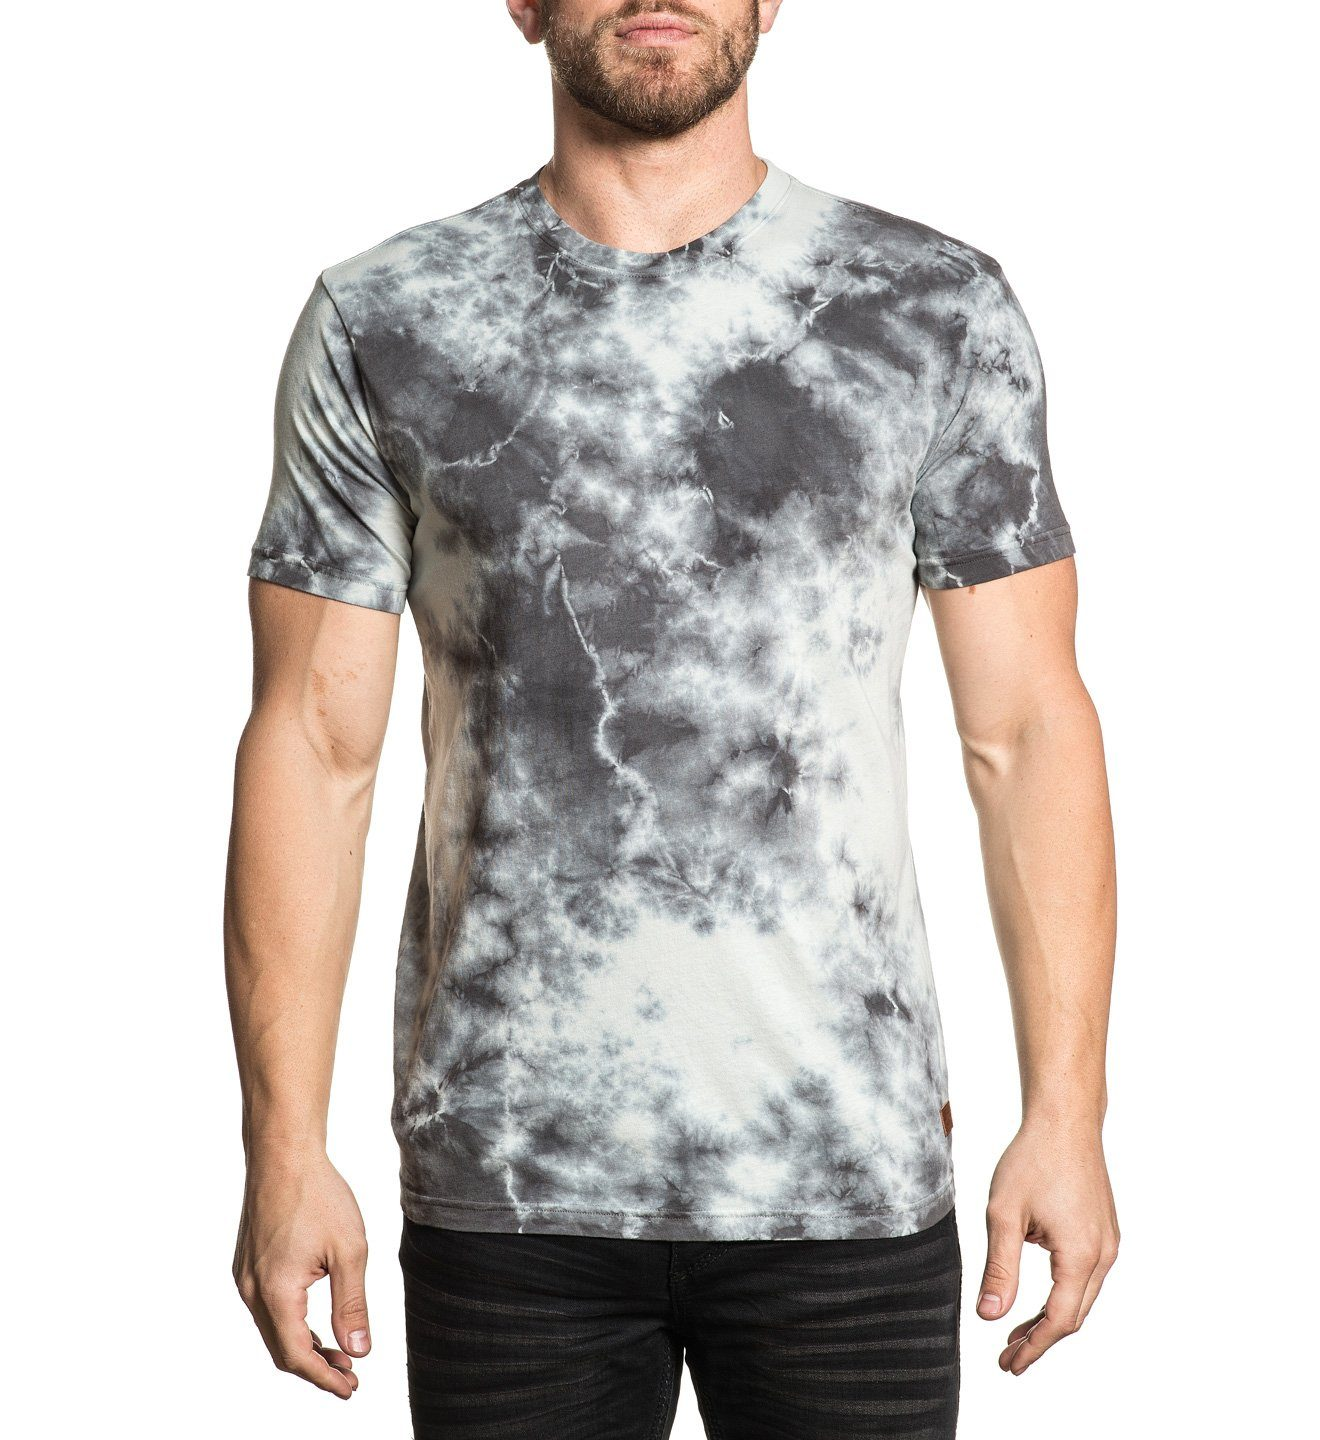 Mens Short Sleeve Tees - Standard Supply M-094